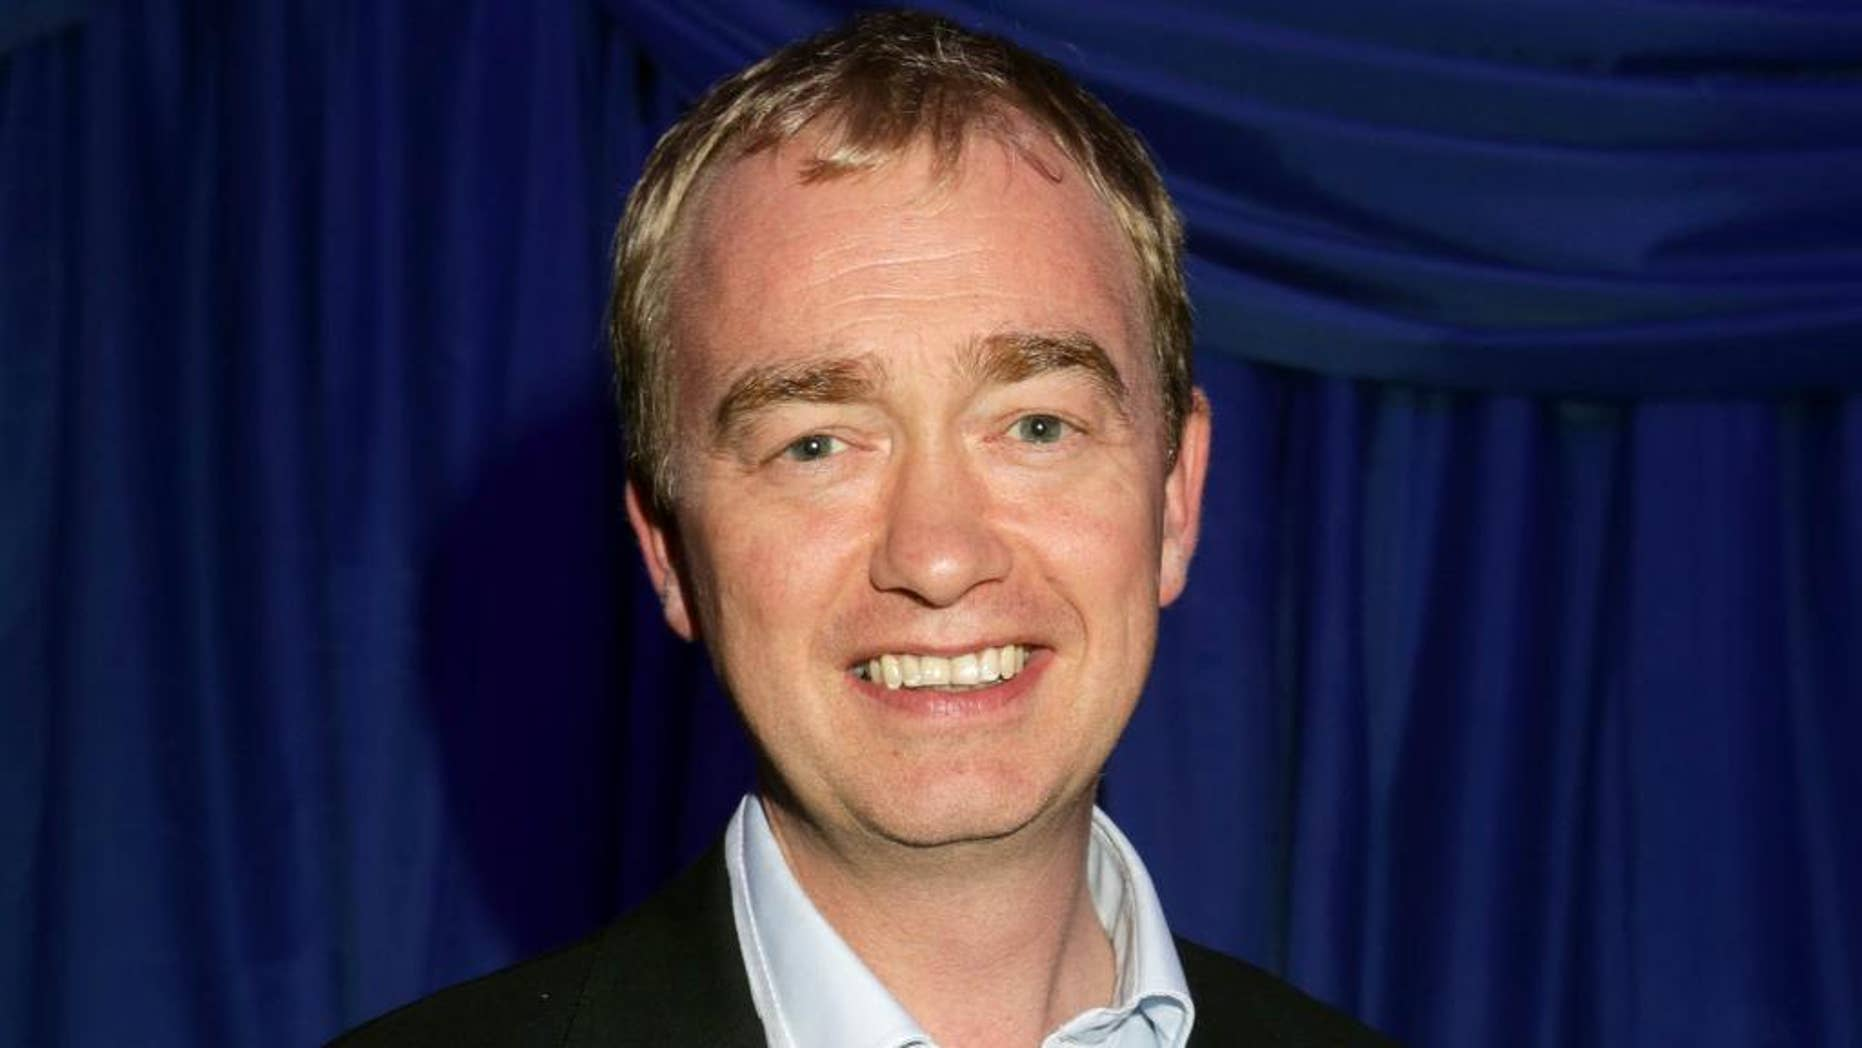 """FILE - In this Thursday, Nov. 8, 2016 file photo, Liberal Democrat leader Tim Farron attends the US Embassy's election night party in central London. A  British opposition party says it will vote against starting exit talks with the European Union unless the government promises a new referendum before leaving the bloc. Liberal Democrat leader Tim Farron said Friday, Nov. 11, 2016 that his party would vote against starting exit negotiations unless voters got to """"have their say in a referendum on the terms of the deal"""" between Britain and the EU.  (Yui Mok/PA via AP, File)"""